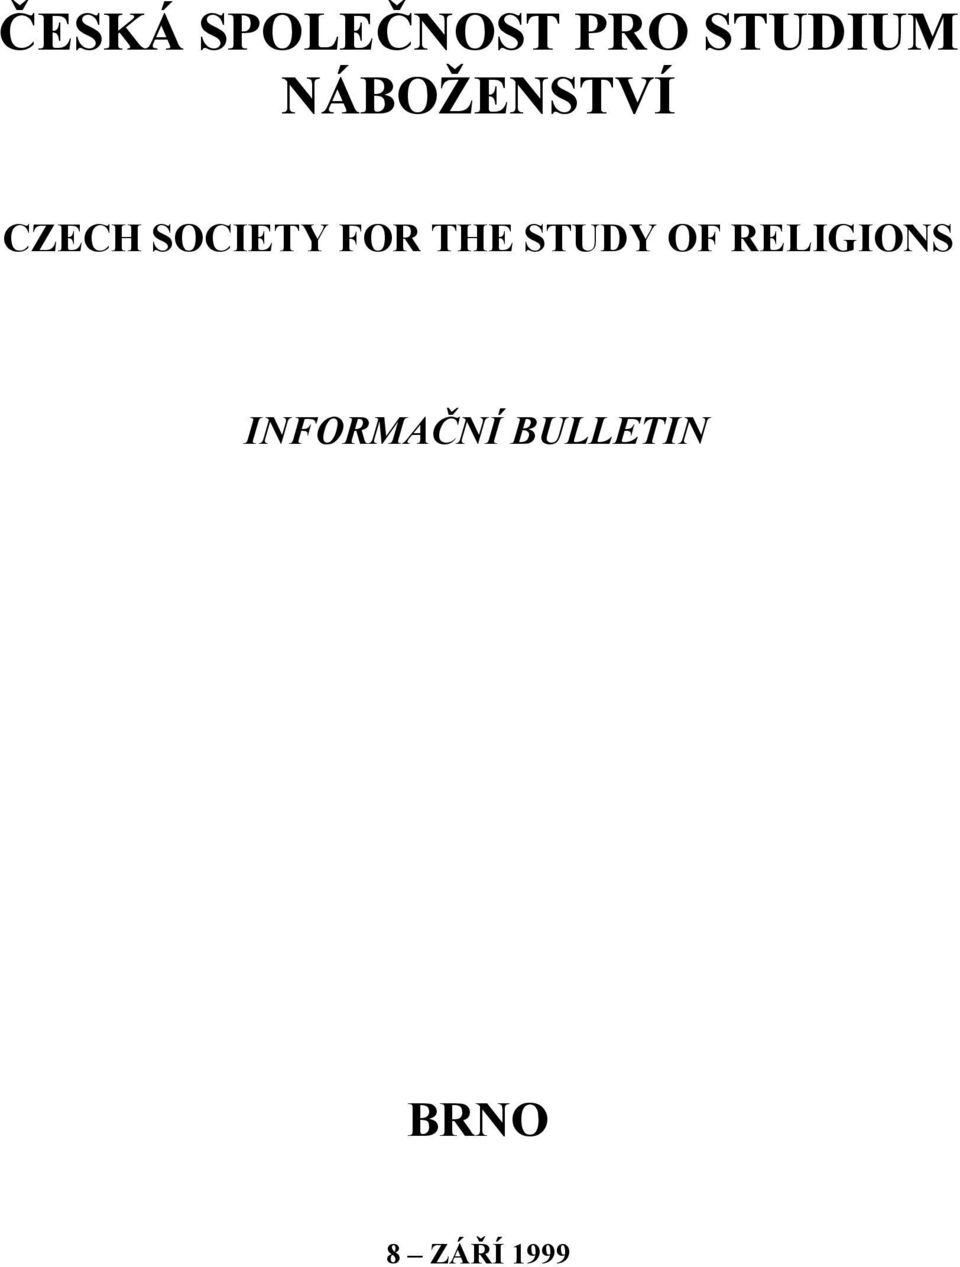 THE STUDY OF RELIGIONS